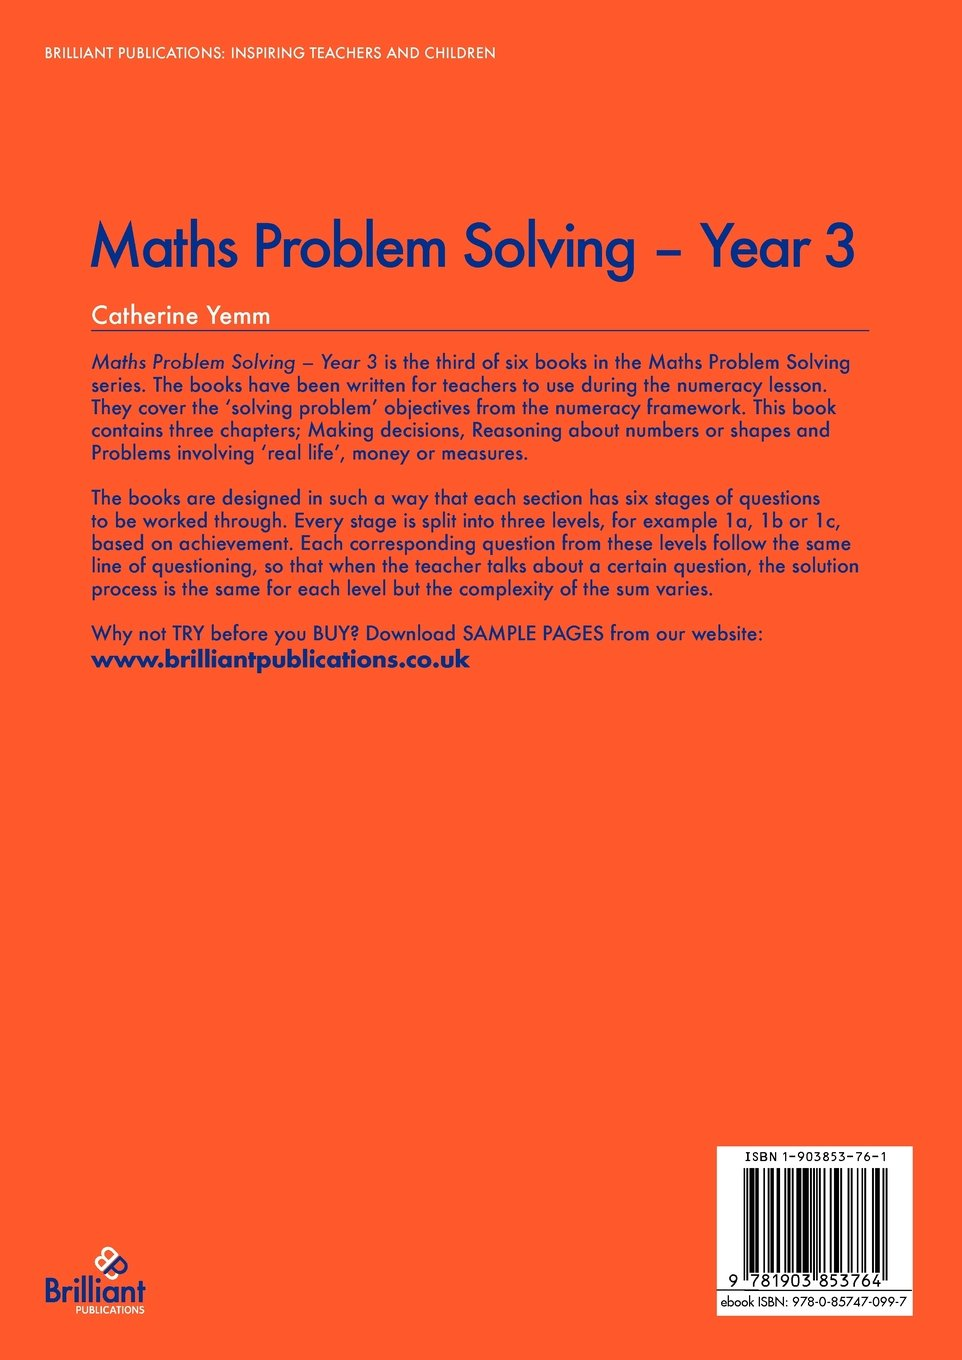 maths problem solving year 1 catherine yemm